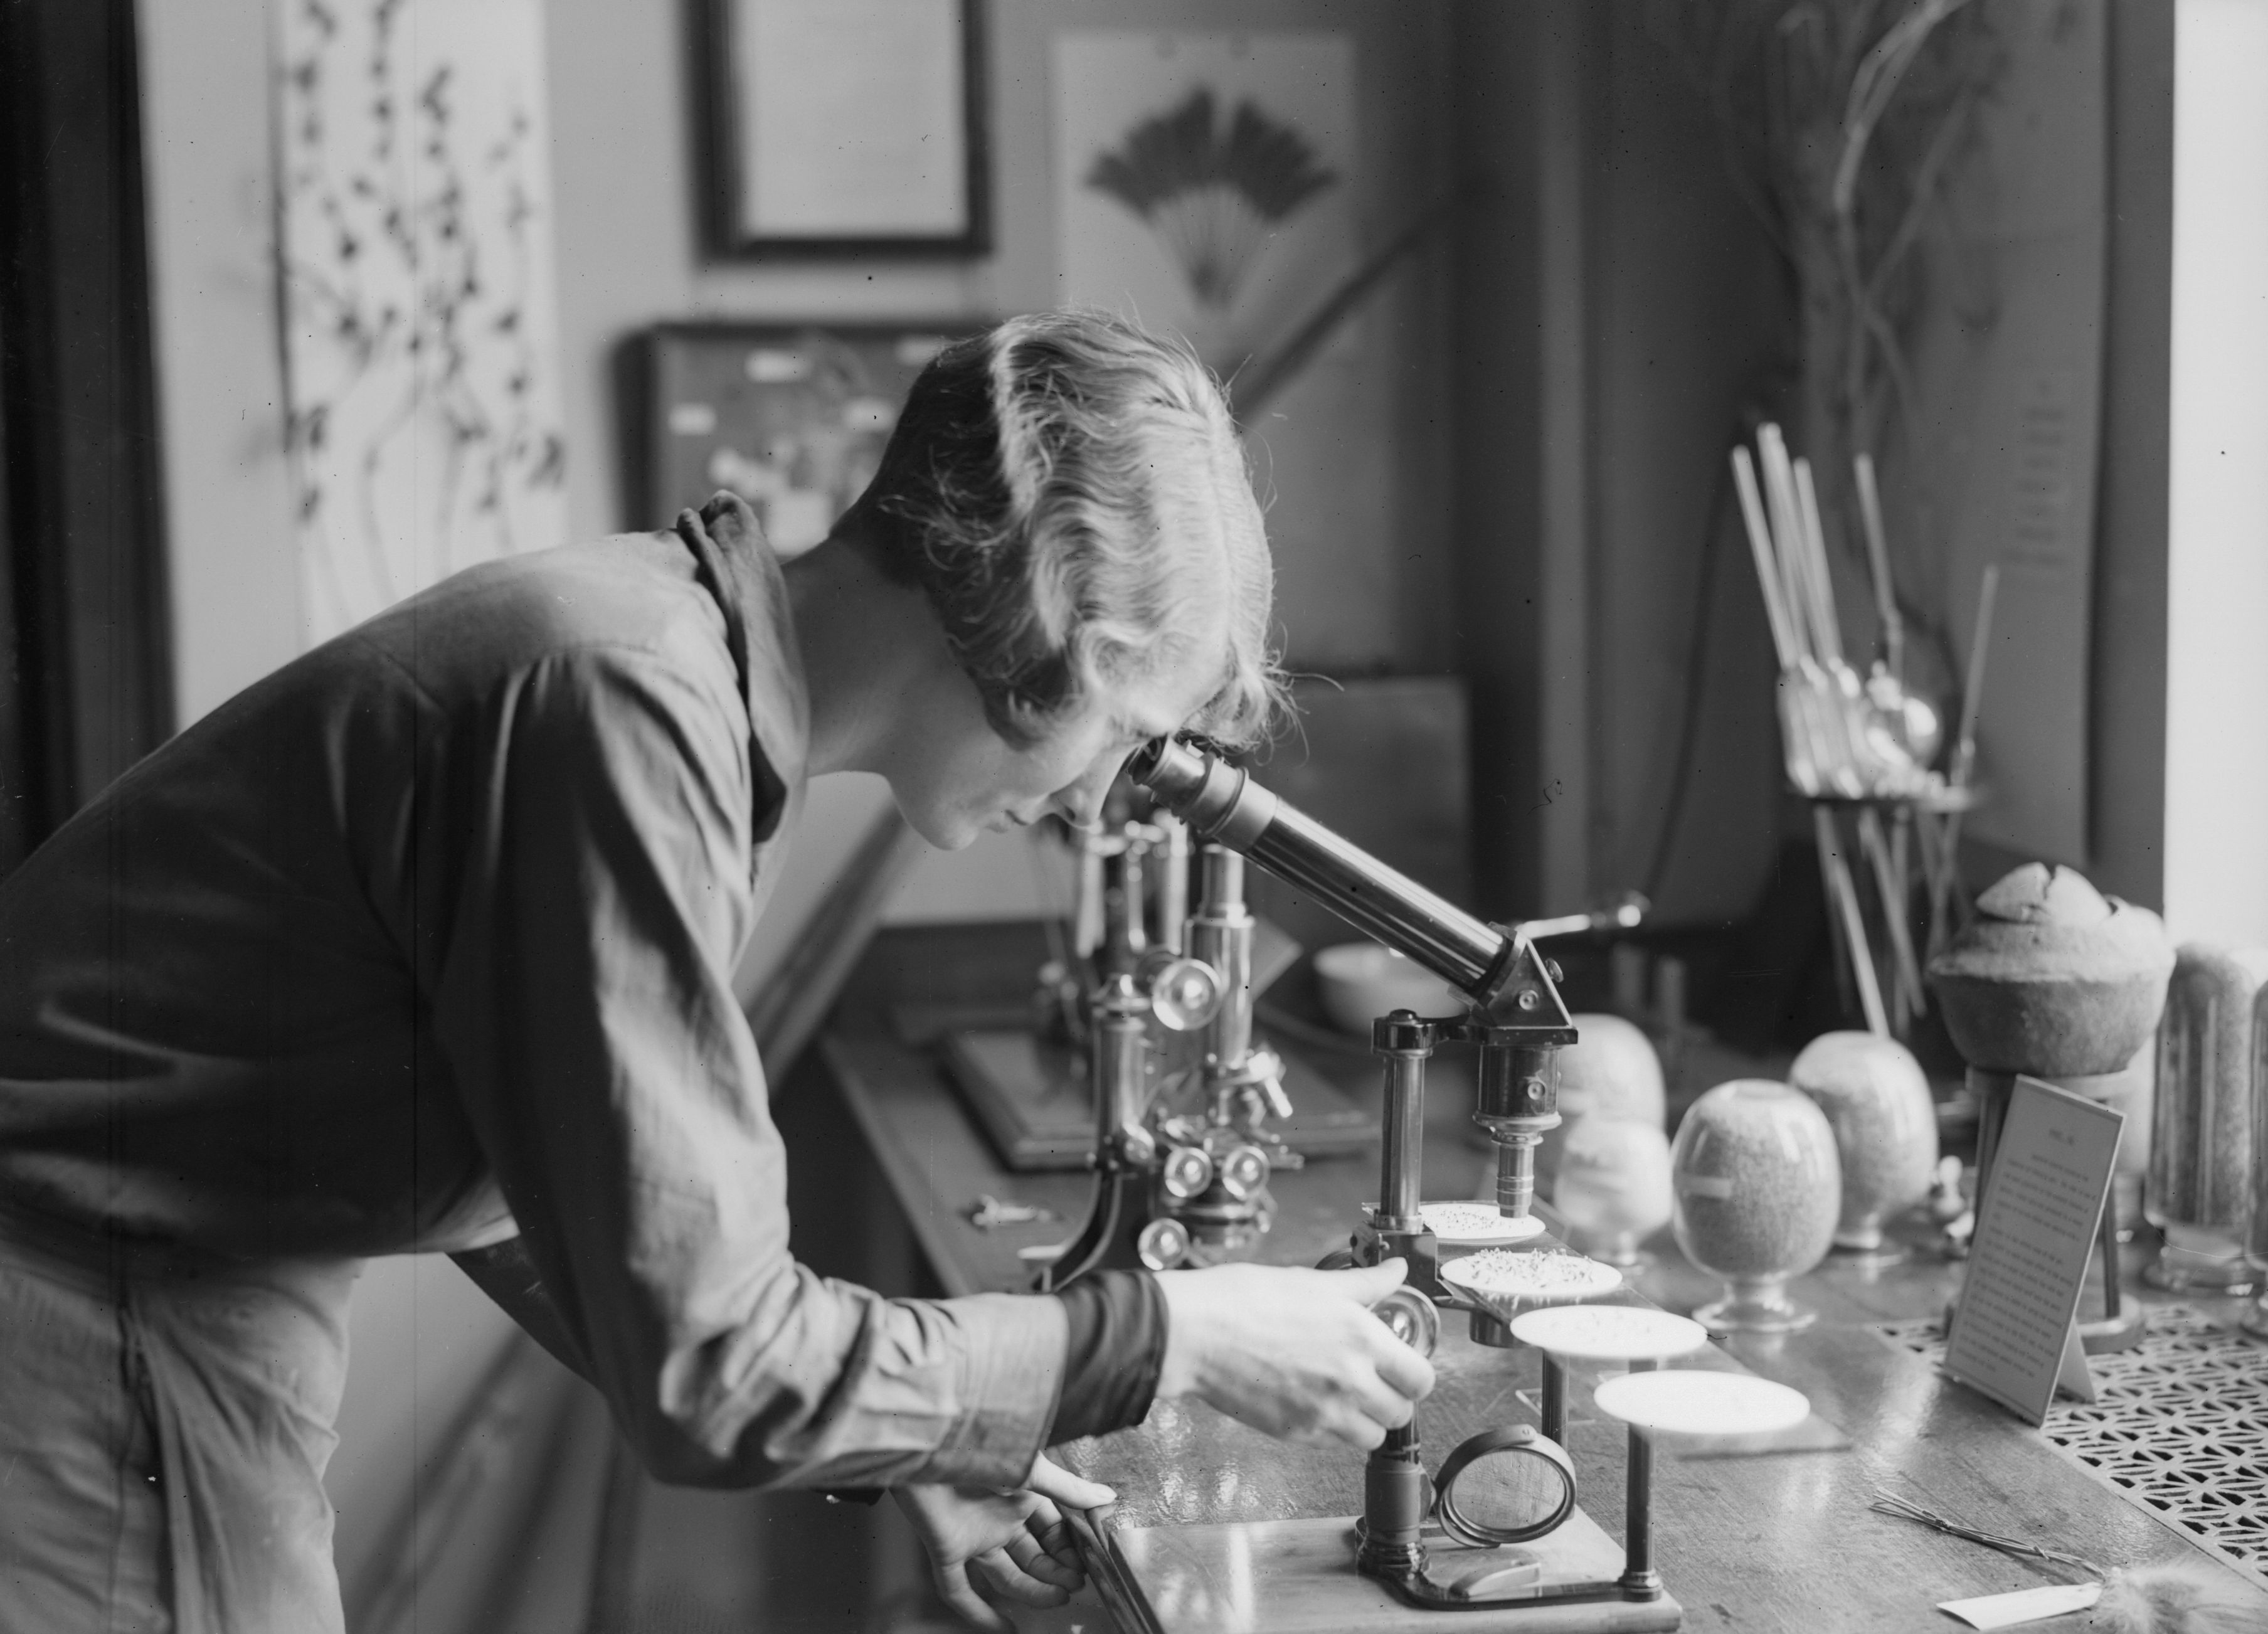 A woman bending over a microscope researching plants in a laboratory.